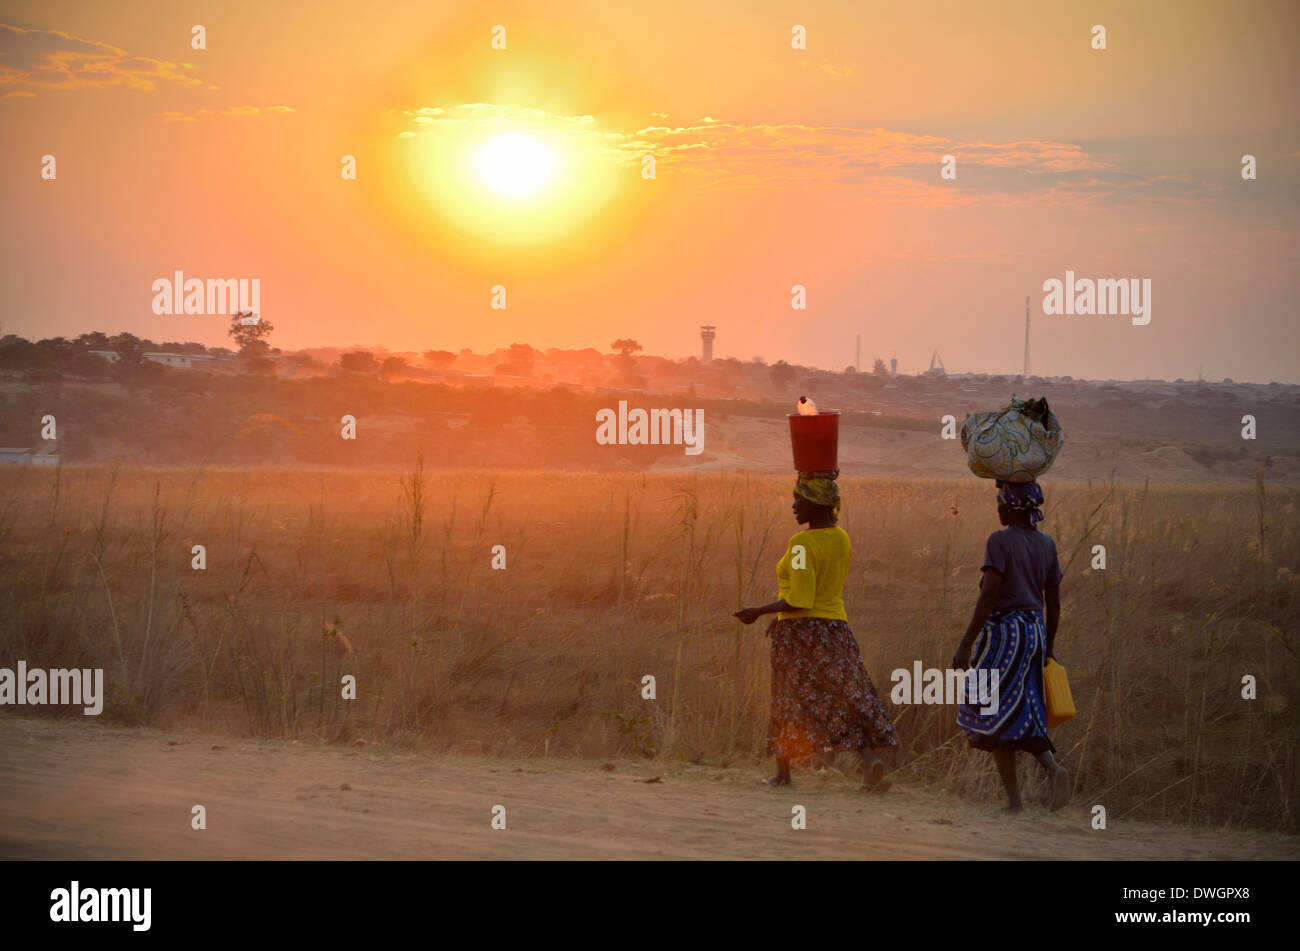 Women carrying water on head at sunset. Cuito Cuanavale, Angola, Africa. - Stock Image